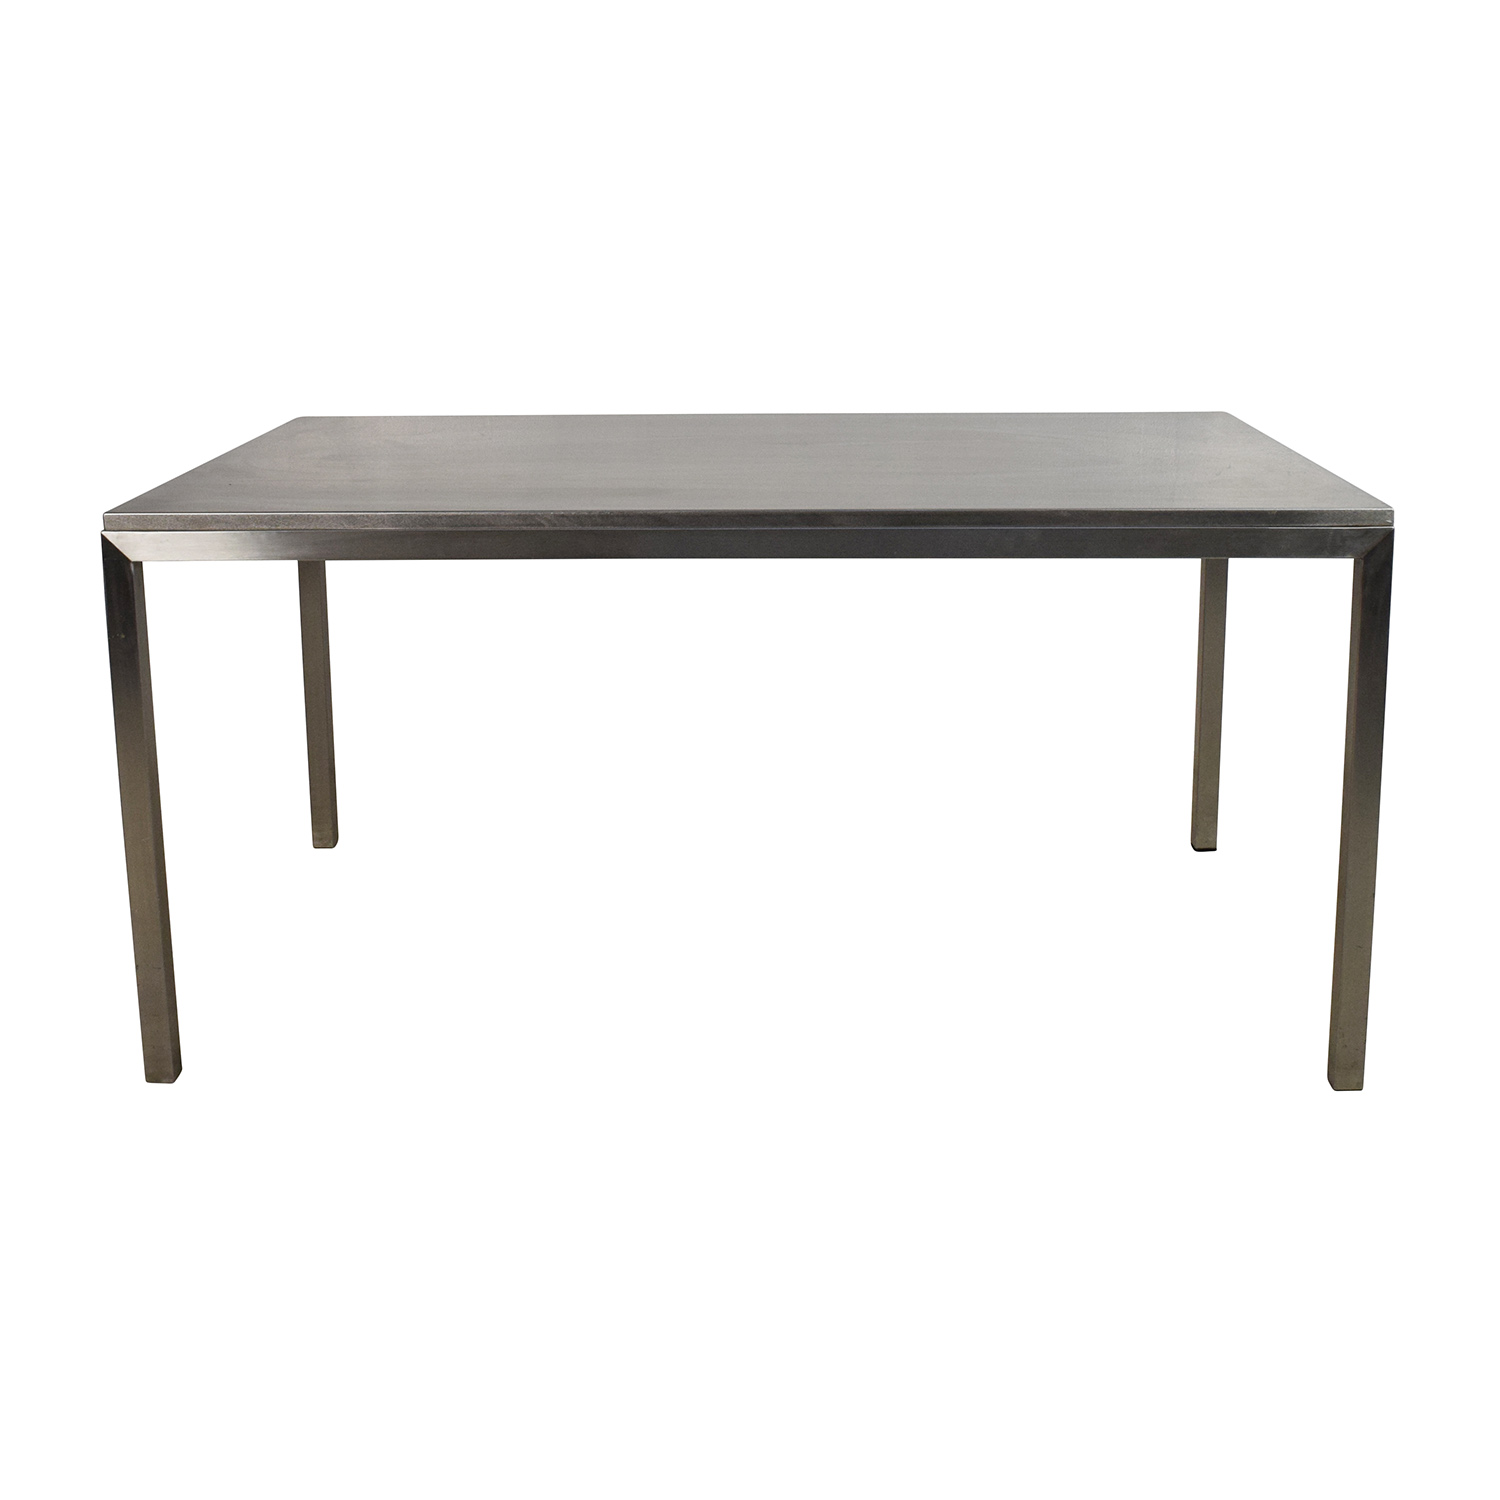 buy Room & Board Portica Stainless Steel Dining Table Room and Board